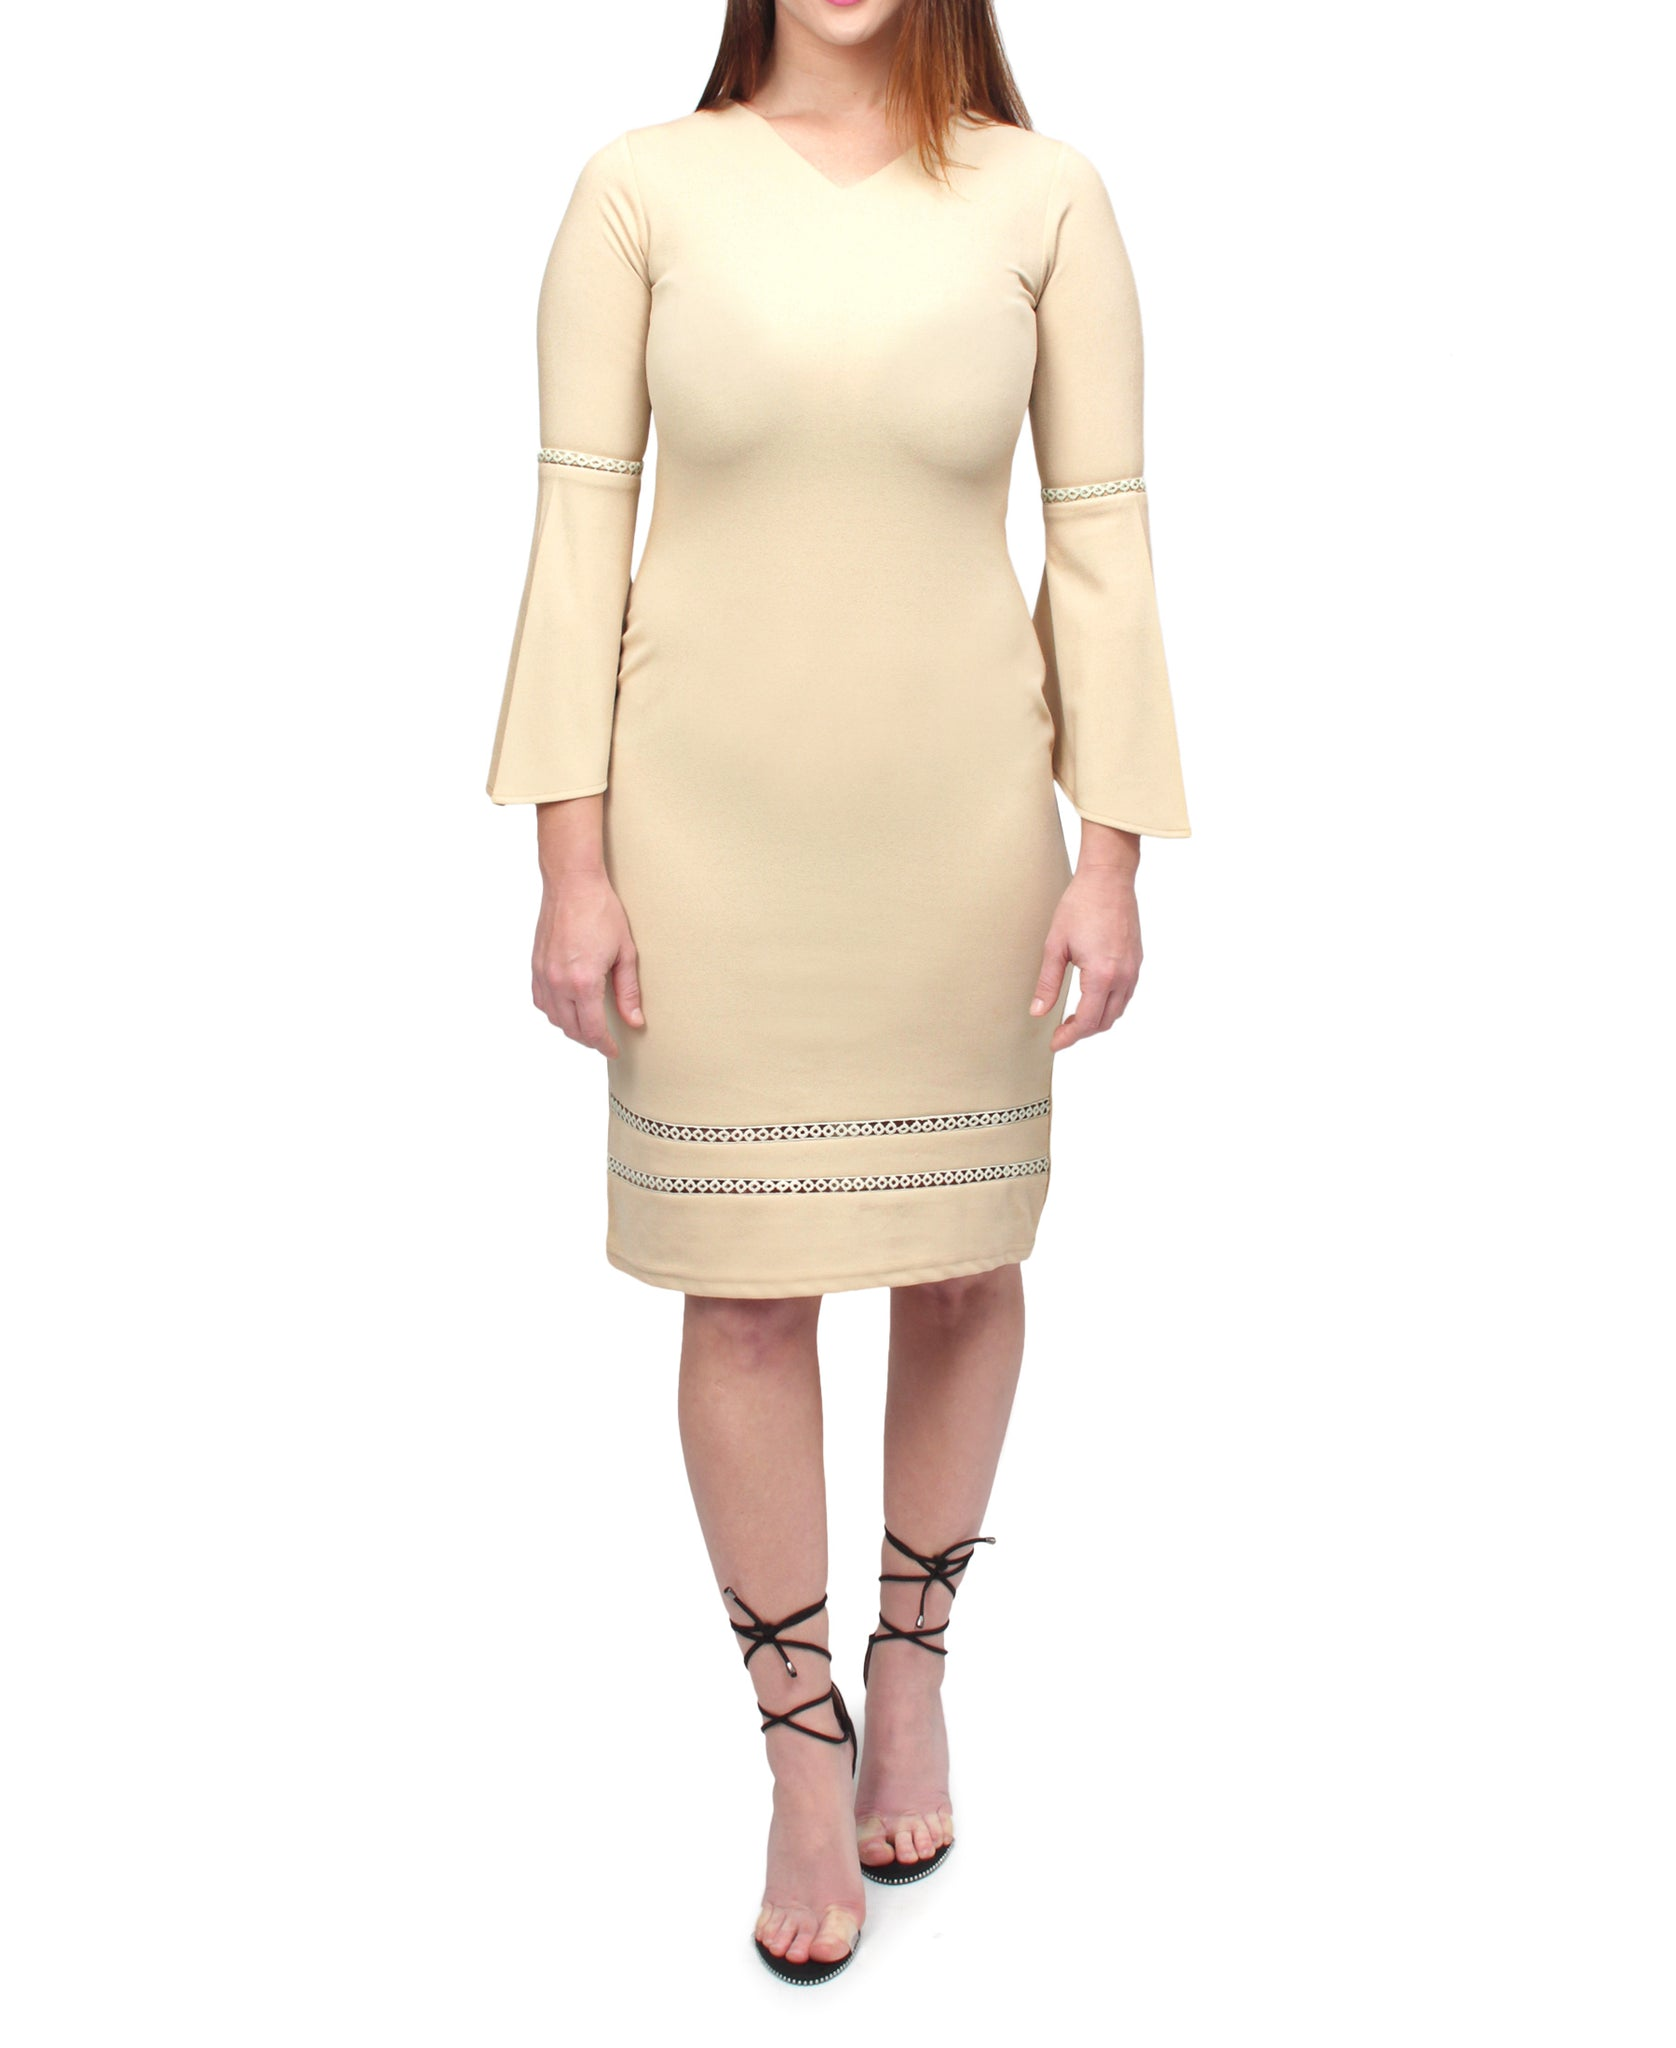 Bell Sleeve Dress - Beige